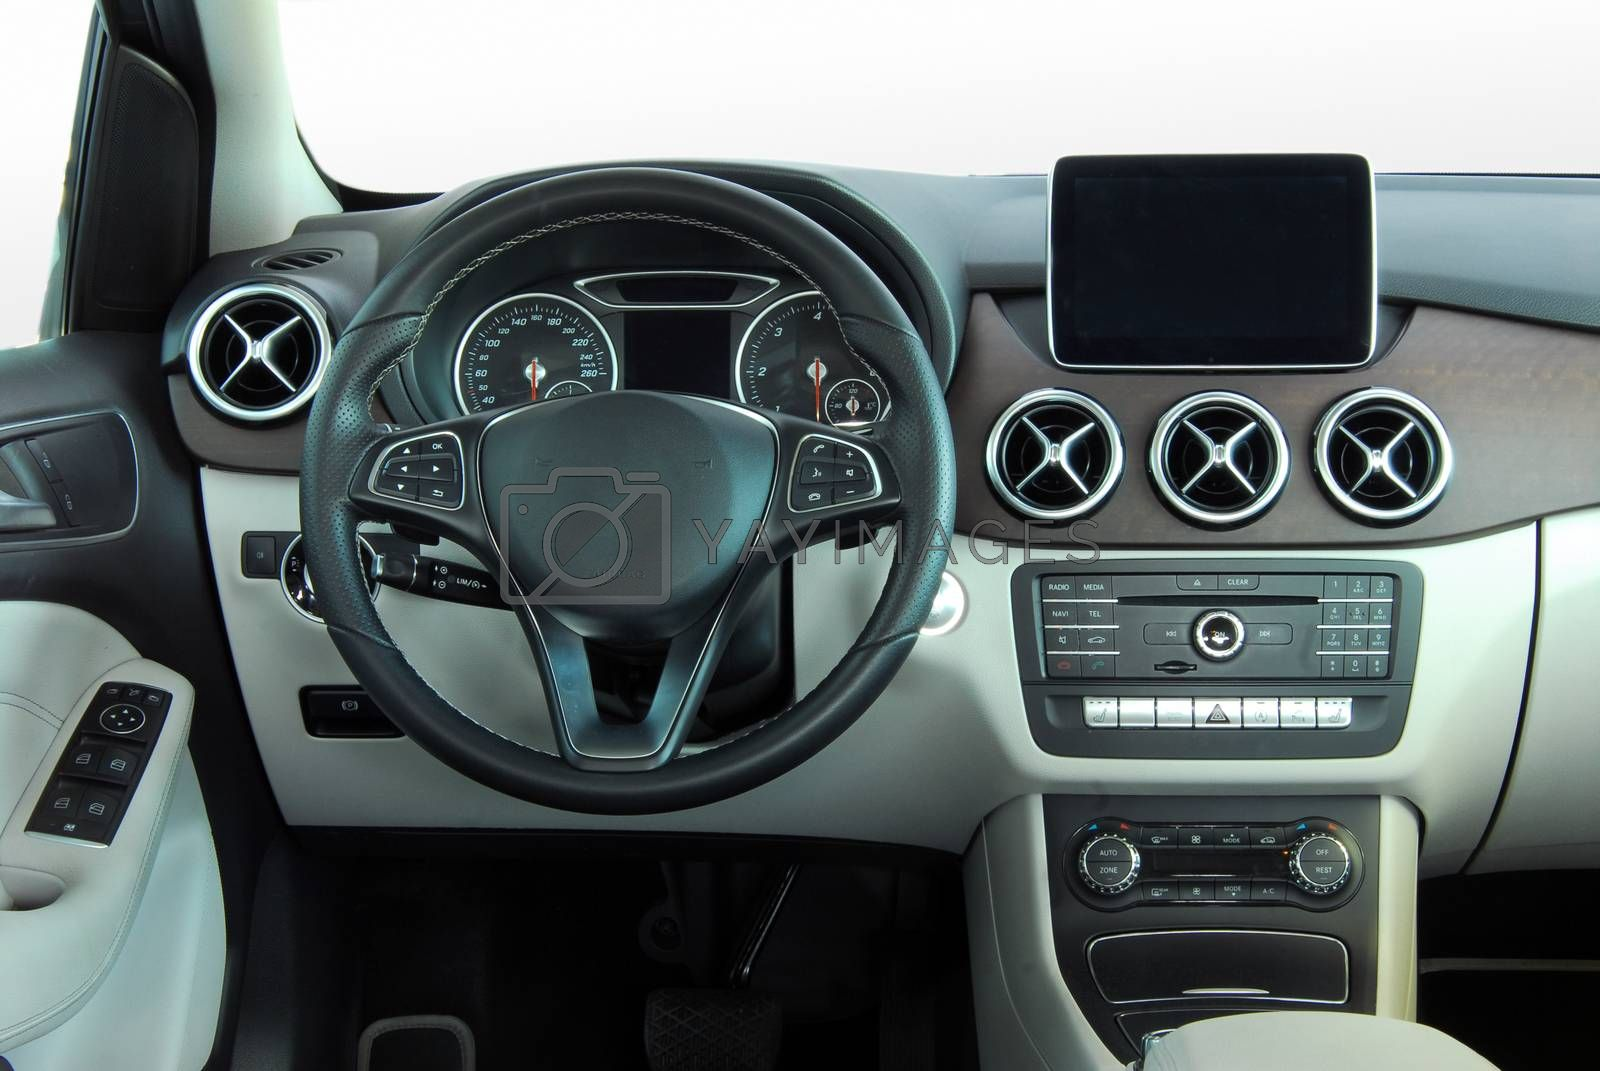 interior of a modern car by aselsa